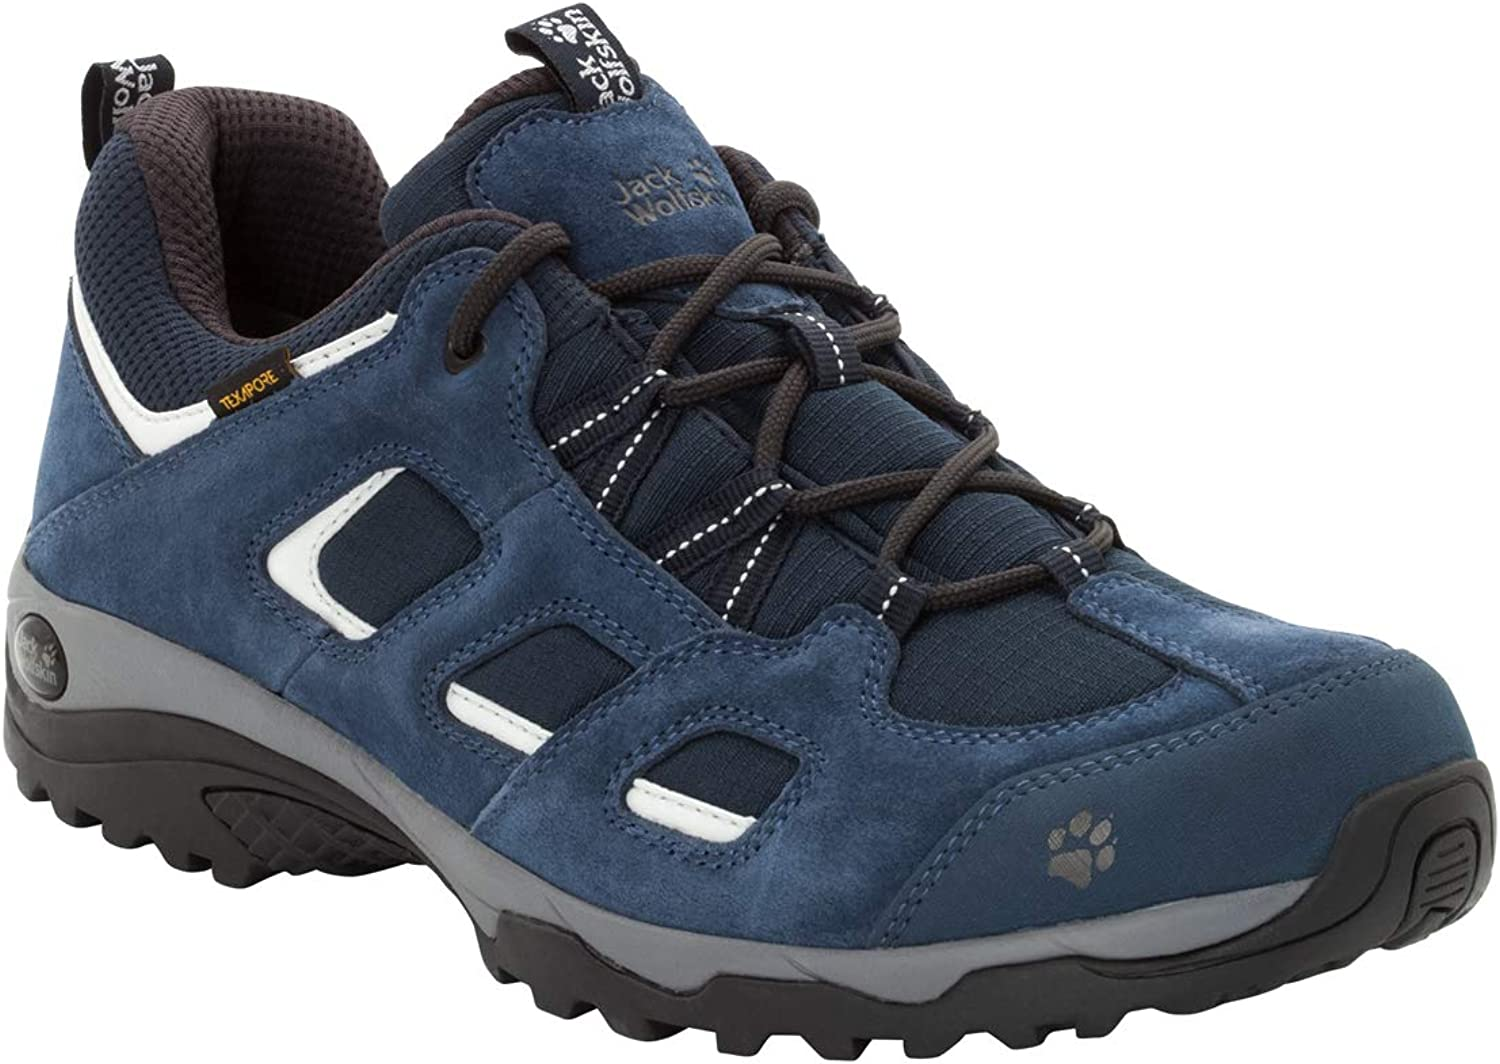 Jack Wolfskin Vojo Hike 2 Texapore Low Men's Waterproof Hiking Shoe, Night Blue, US Men's 10,5 D US